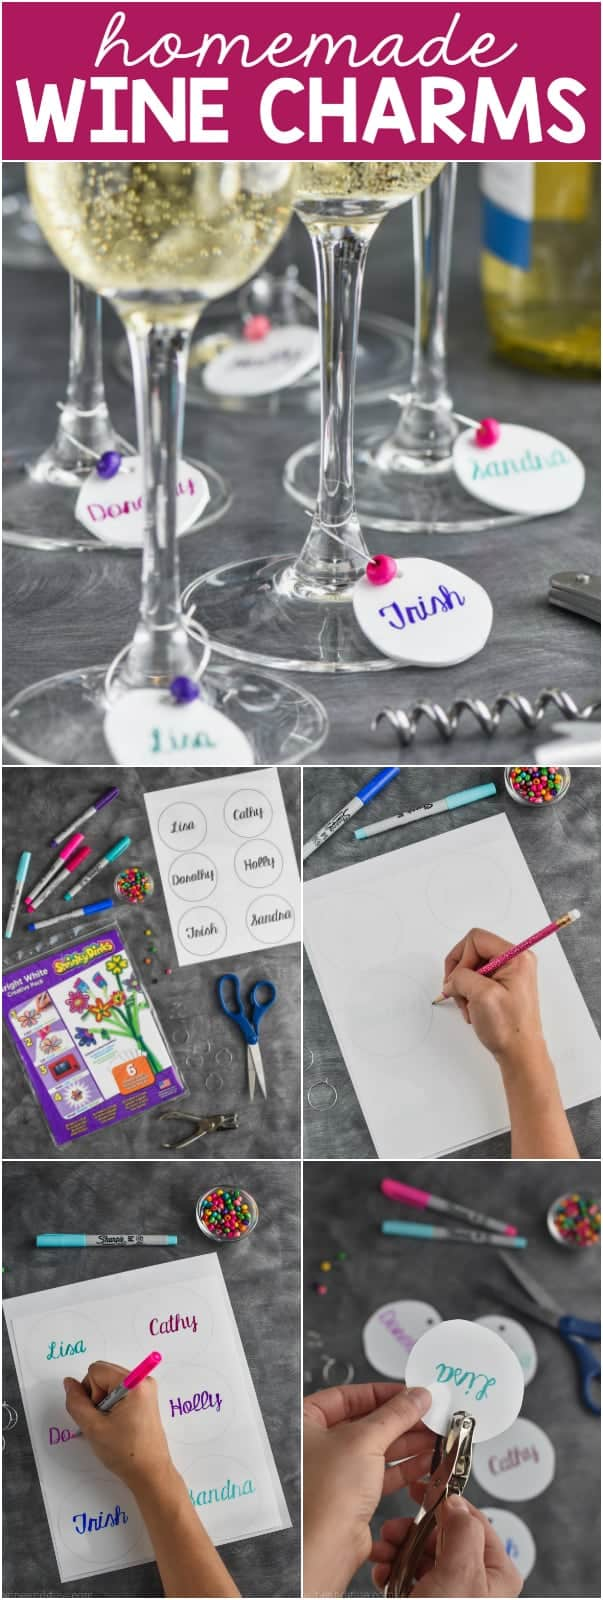 A collage of five photos showing how to create homemade Wine Charms